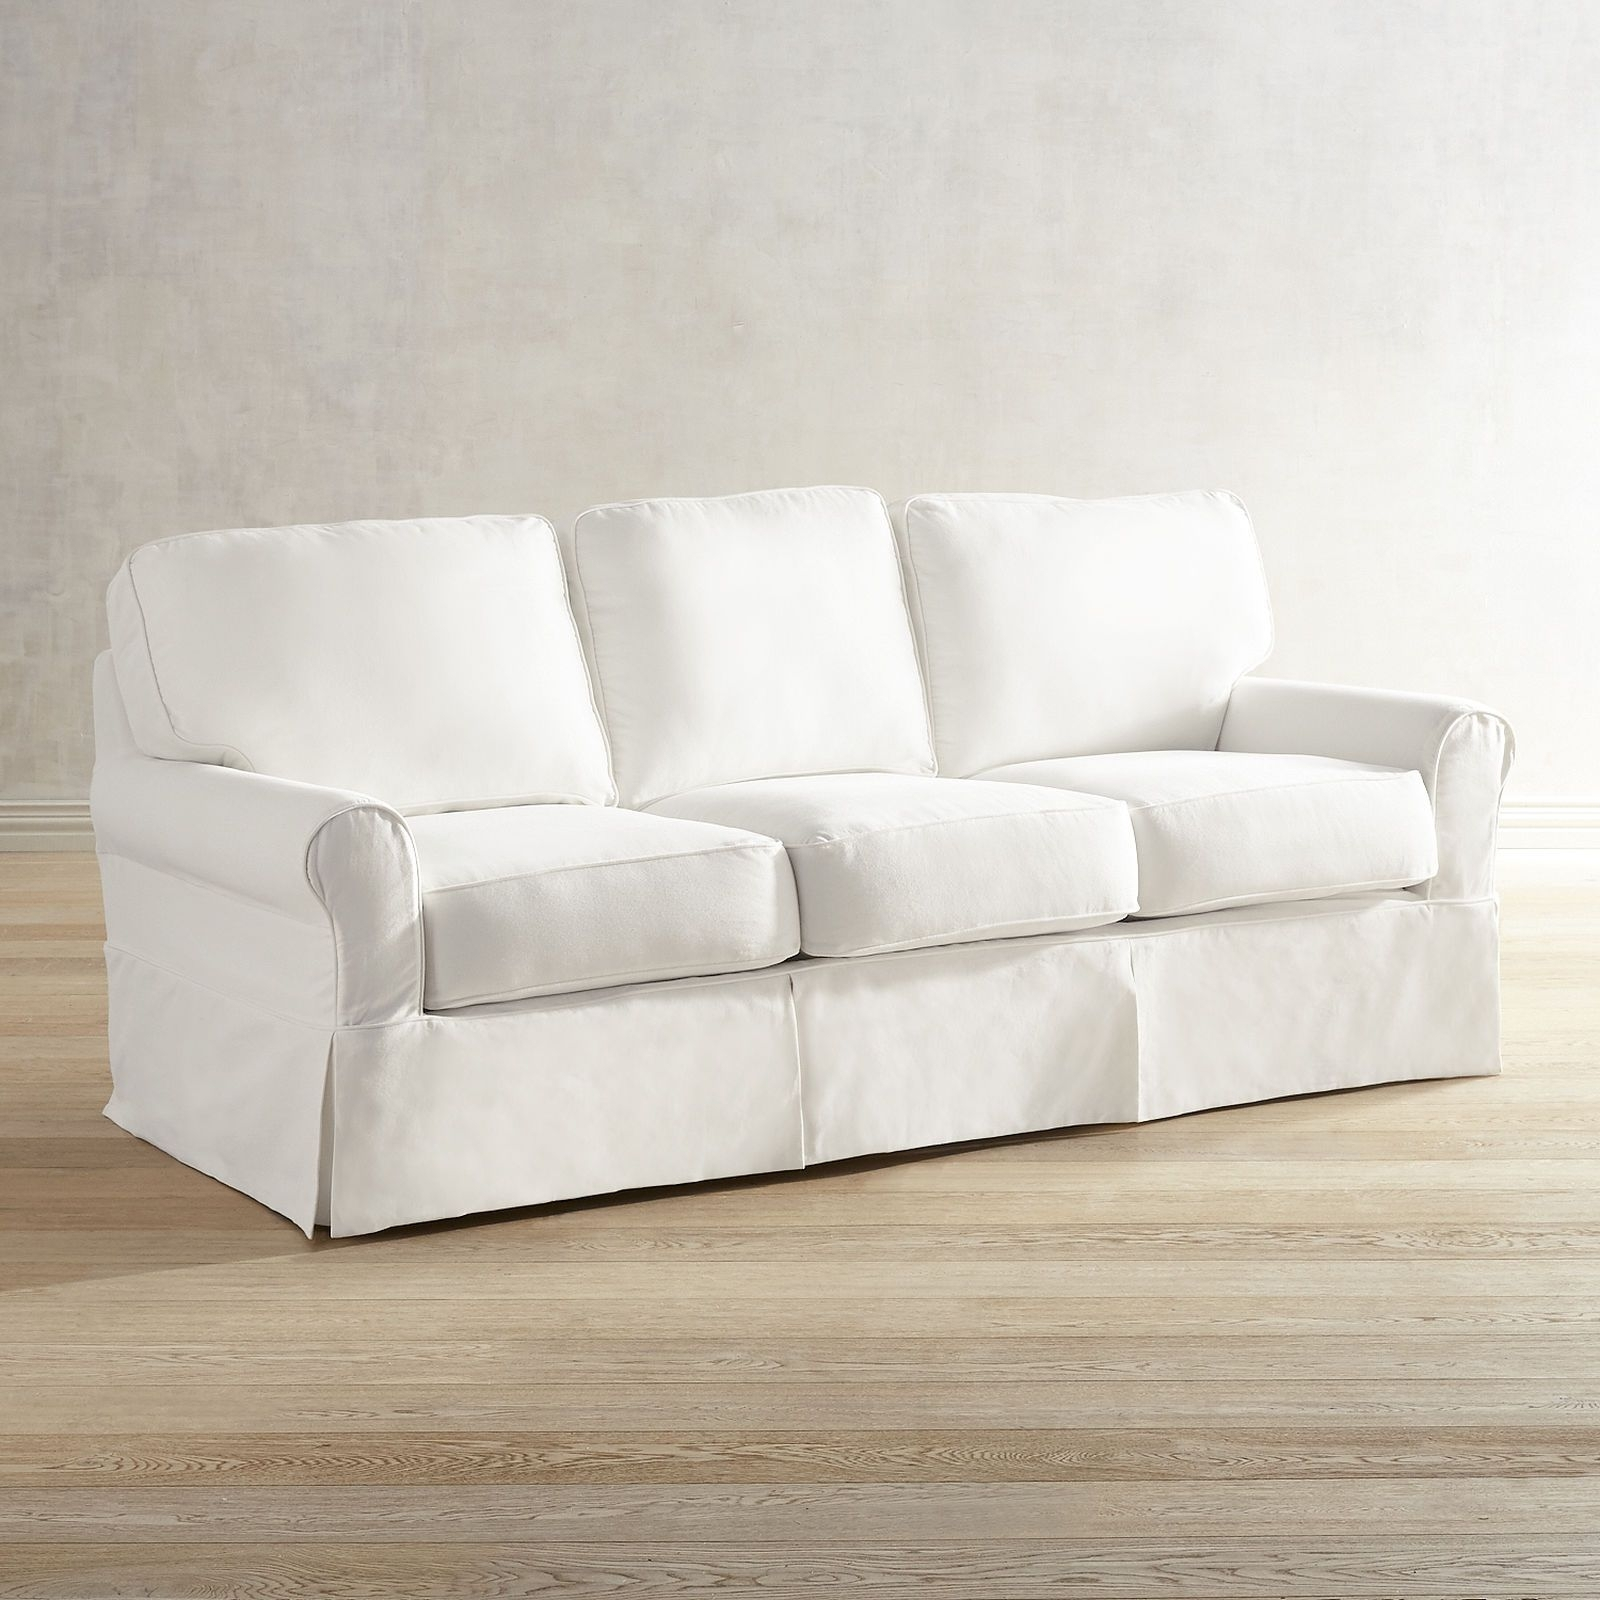 Lia Pierformance™ White Slipcovered Sofa | F U R N I T U R E Within London Optical Reversible Sofa Chaise Sectionals (Image 10 of 25)